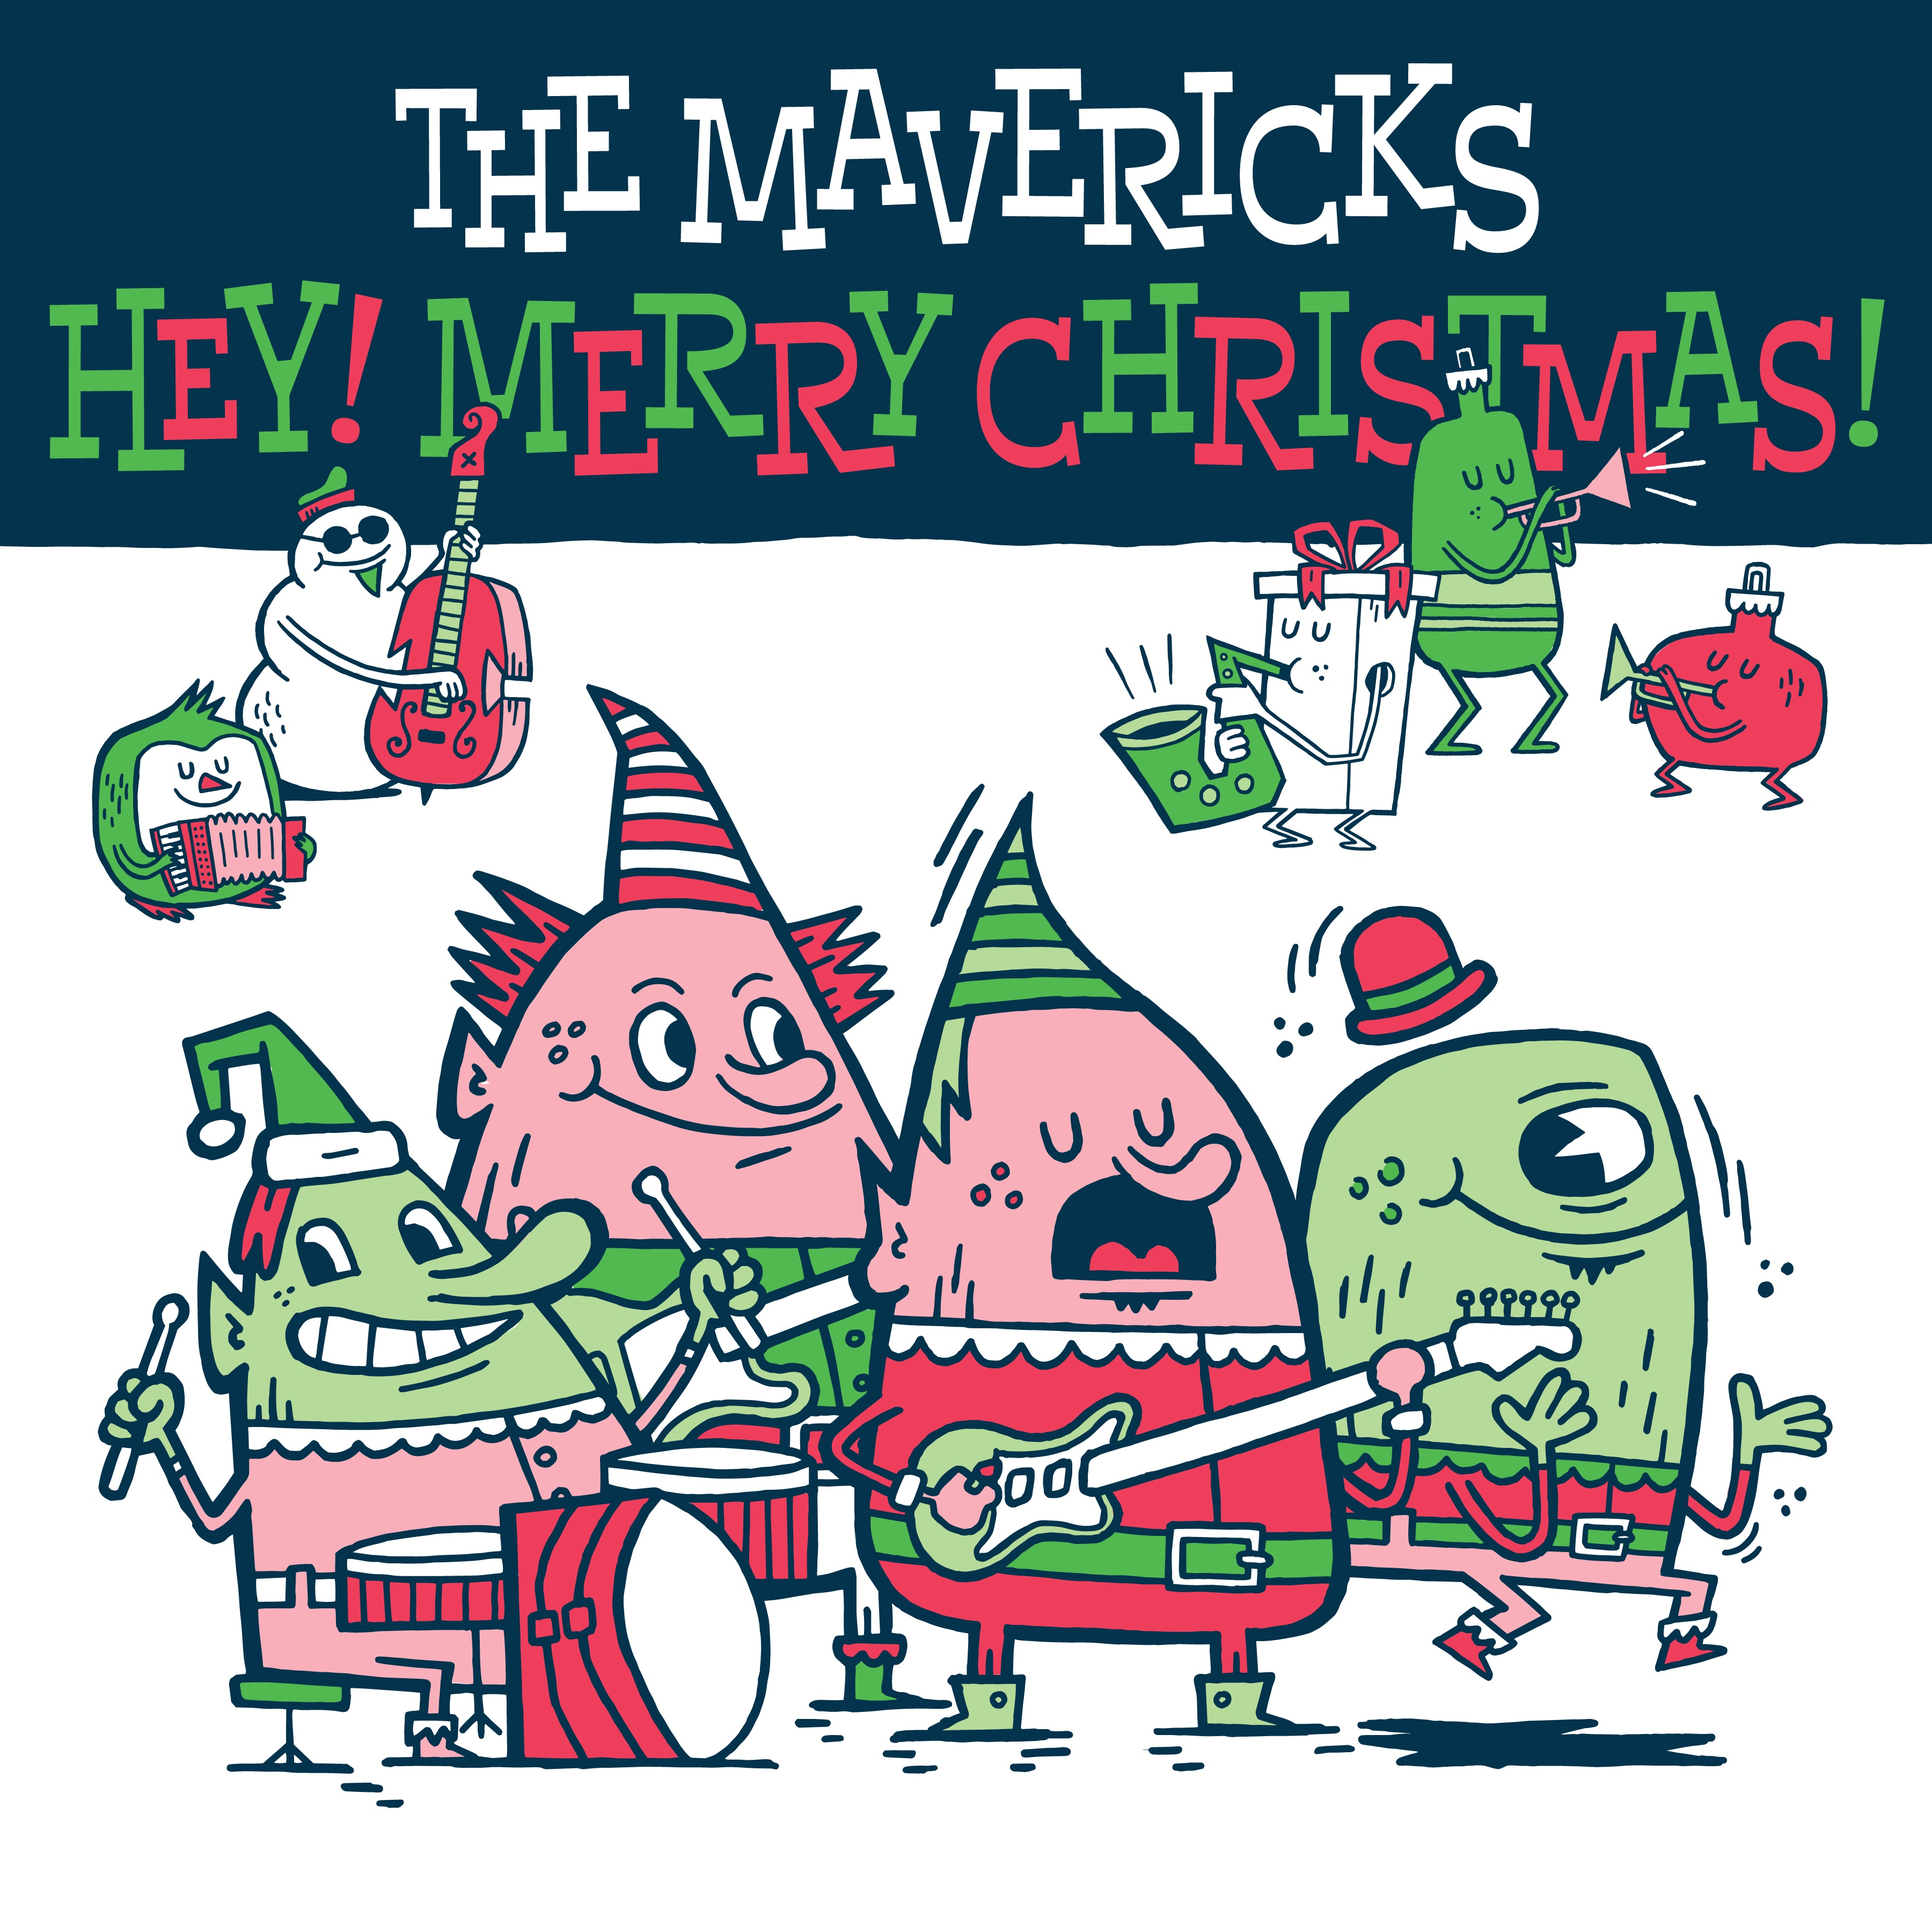 the-mavericks-hey-merry